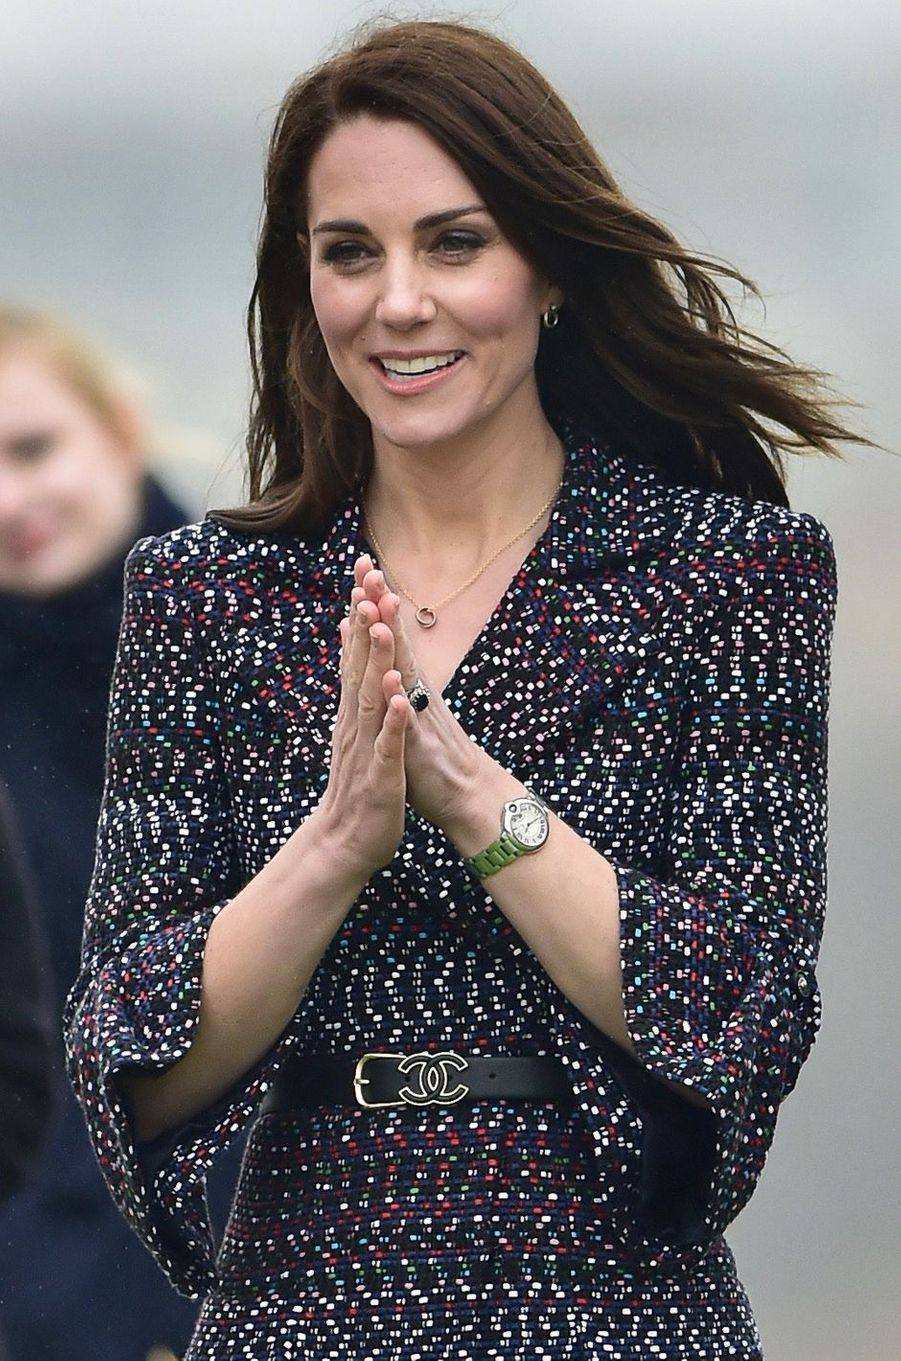 La duchesse de Cambridge, née Kate Middleton, à Paris le 18 mars 2017